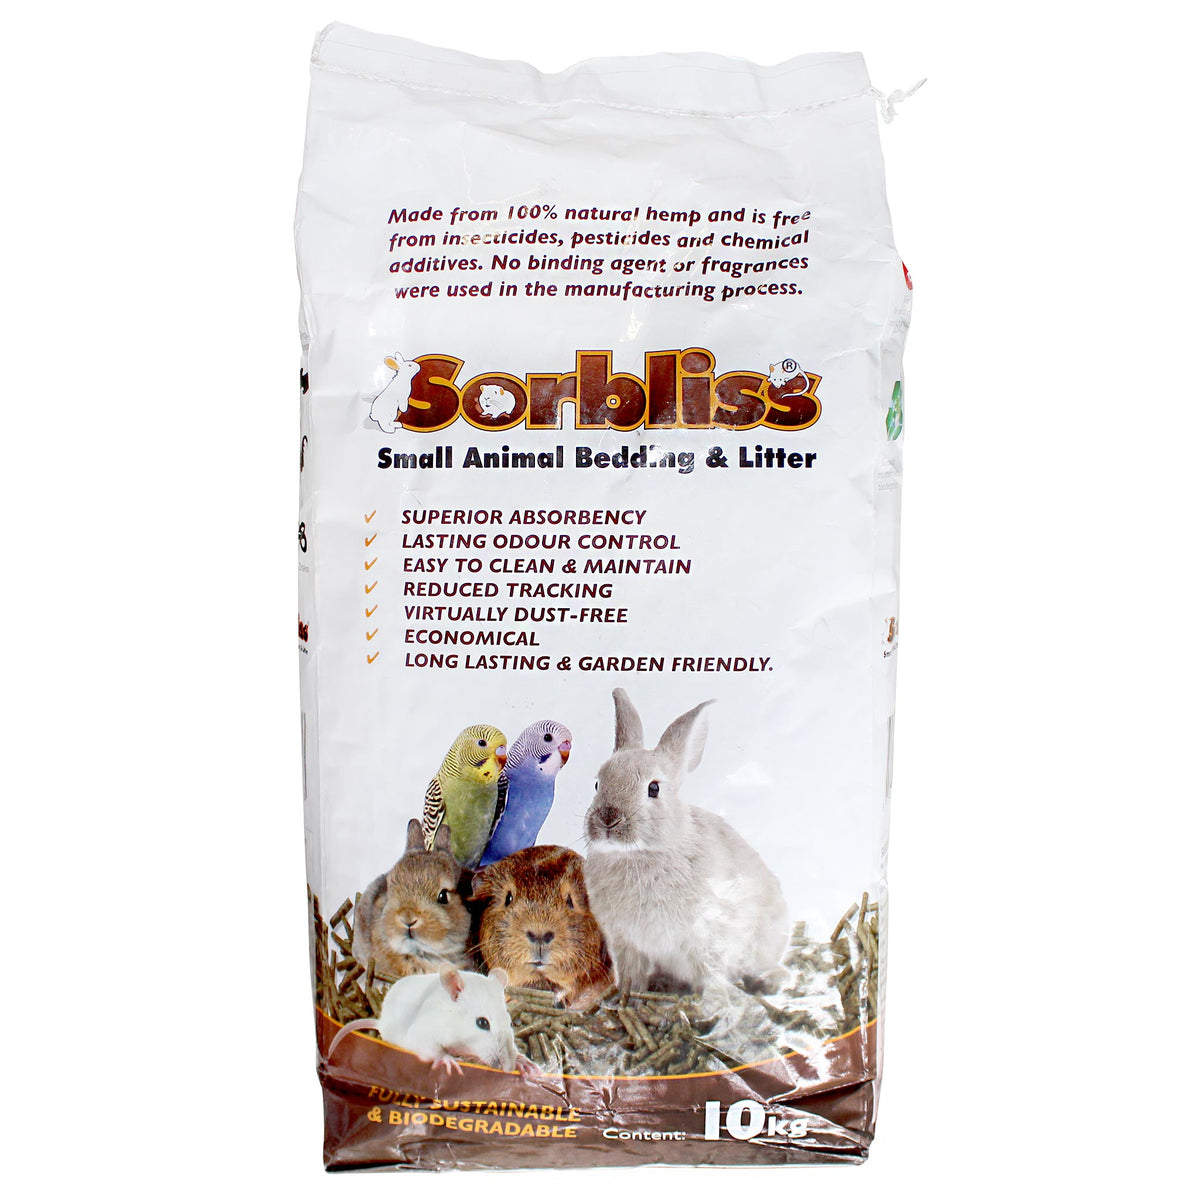 Sorbliss Hemp Pellet Small Animal Bedding & Litter 10kg